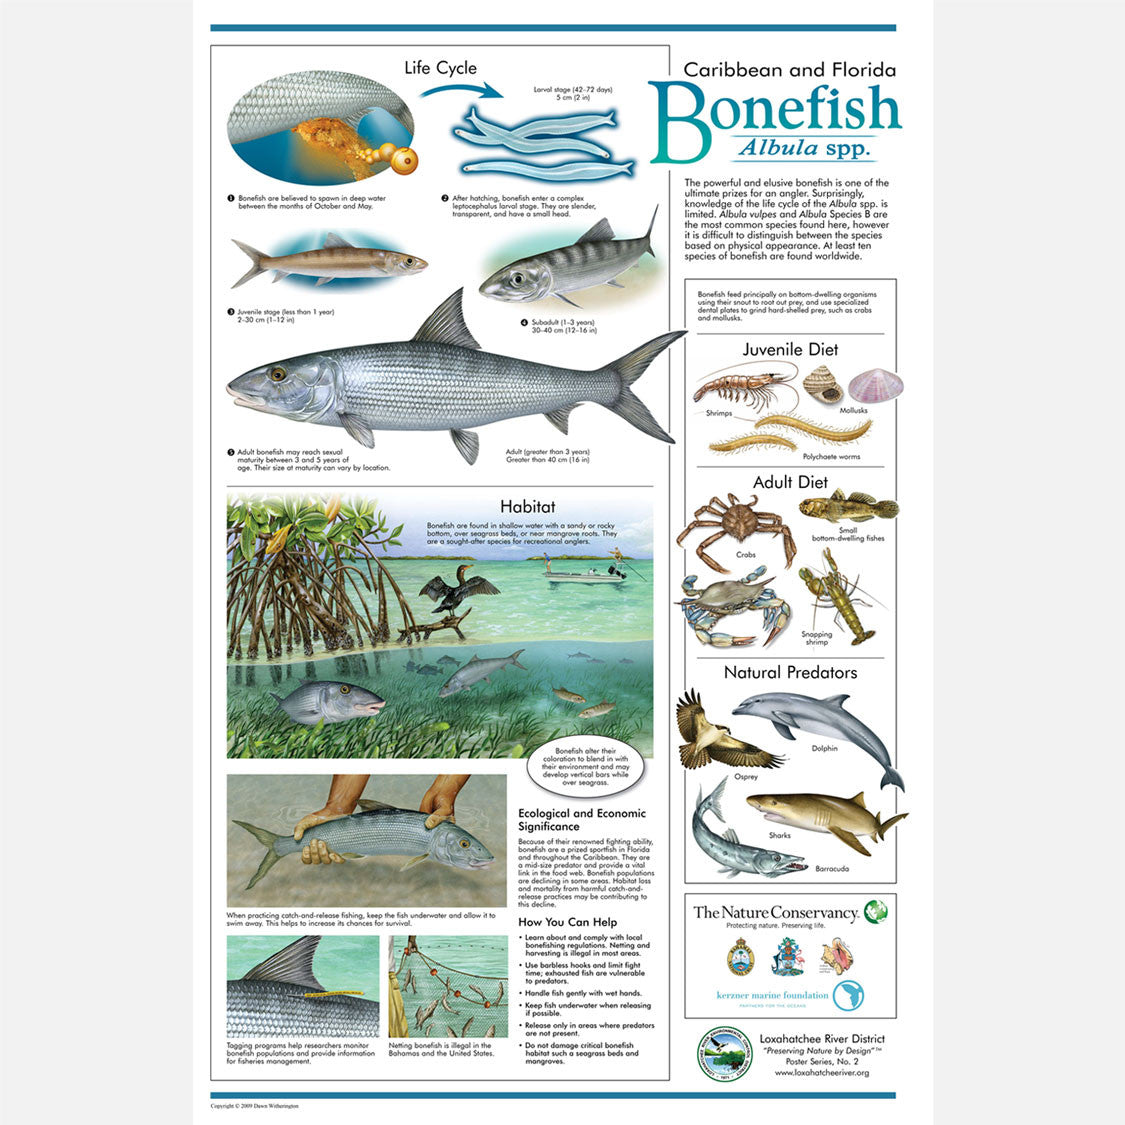 This beautiful poster provides information about Caribbean and Florida Bonefish, Albula spp.